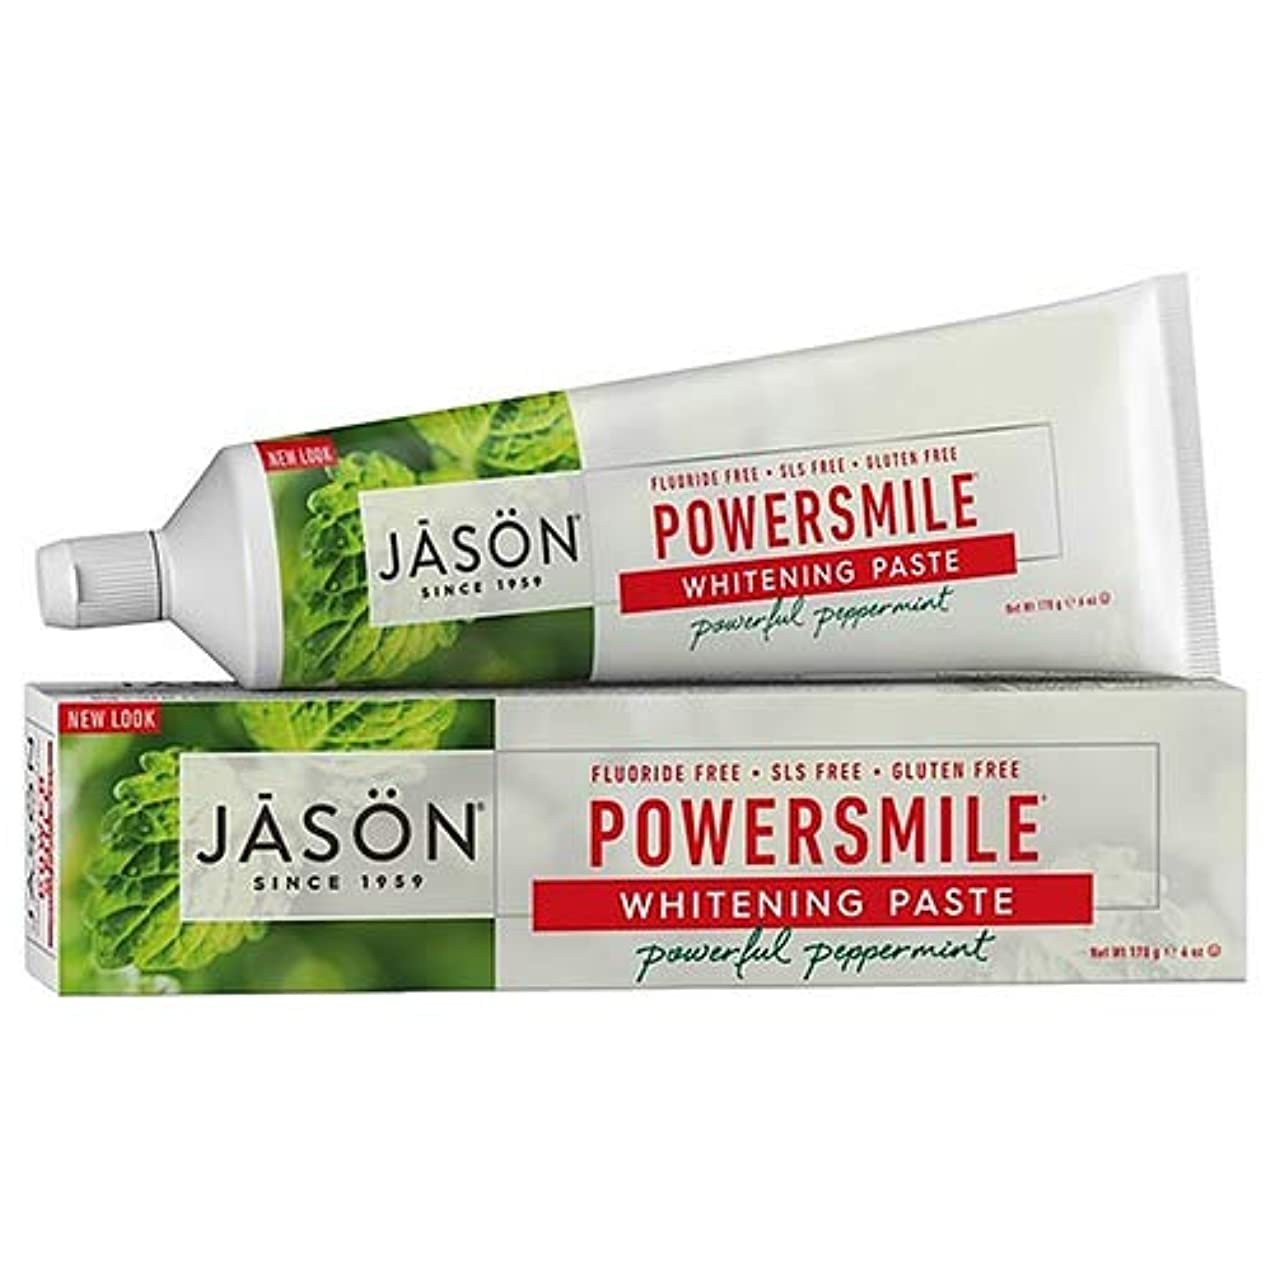 ツーリスト組高いJason Natural, PowerSmile, Antiplaque & Whitening Paste, Powerful Peppermint, 6 oz (170 g)